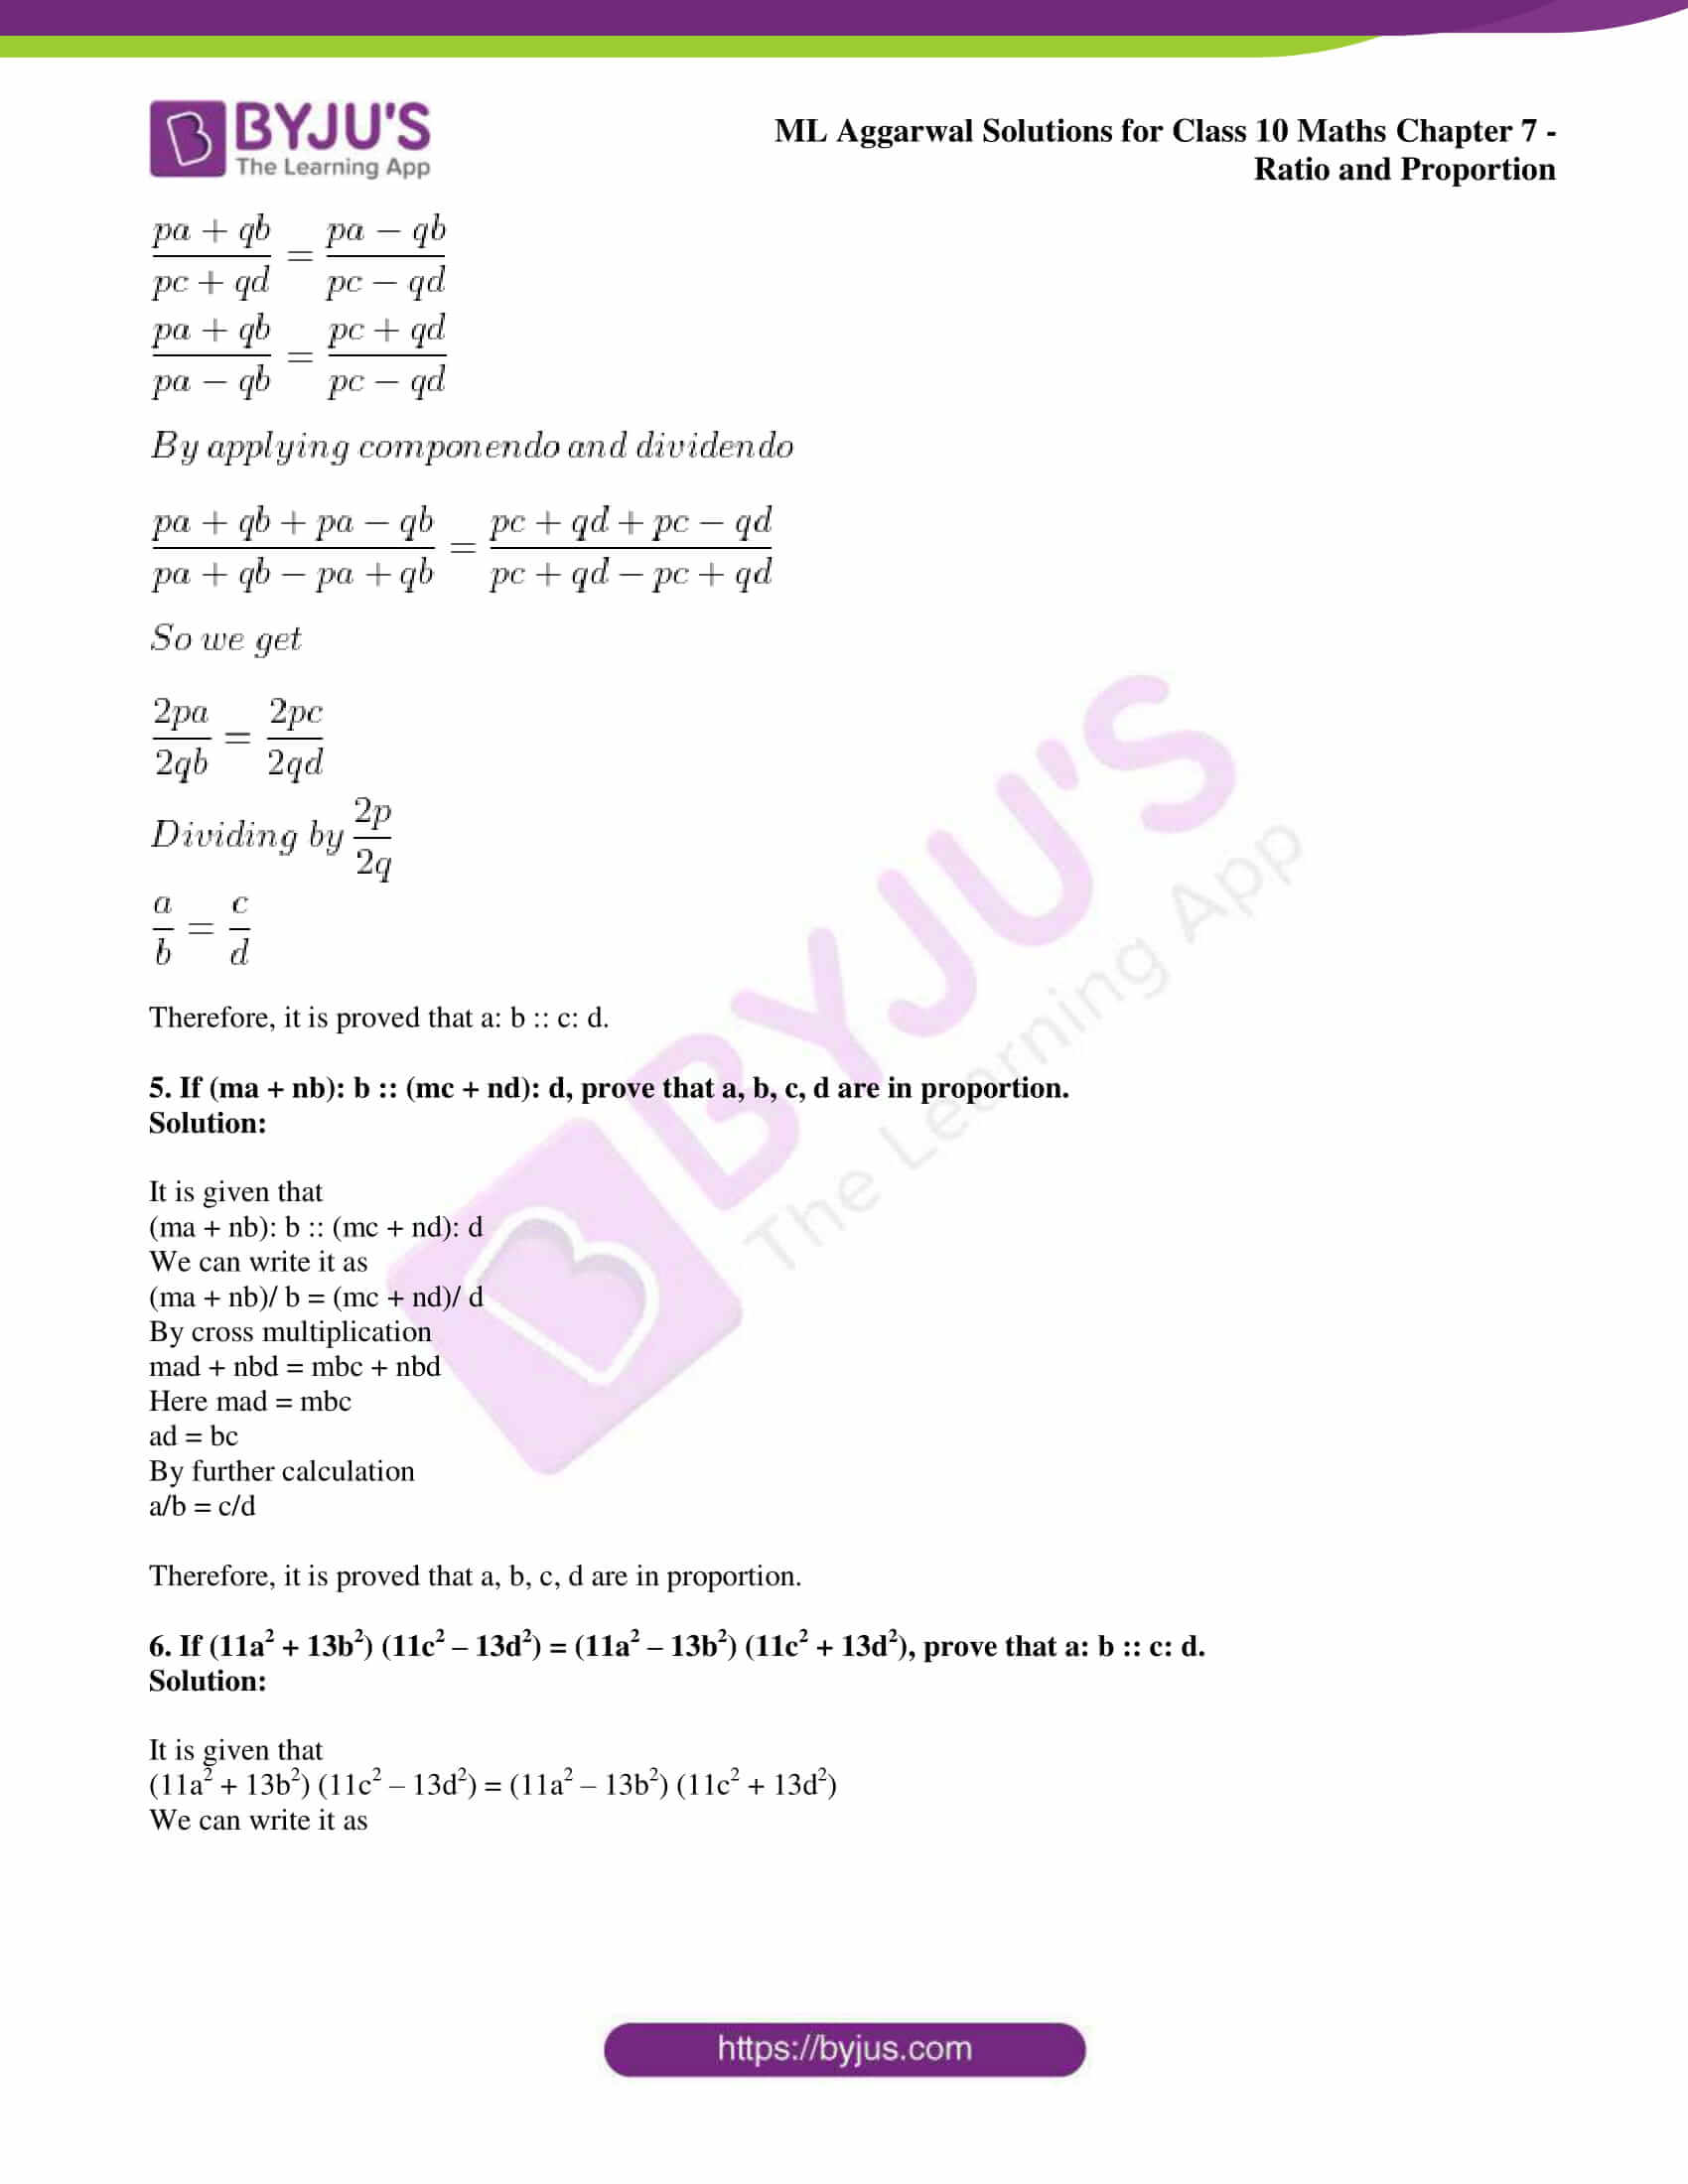 ml aggarwal solutions for class 10 maths chapter 7 48